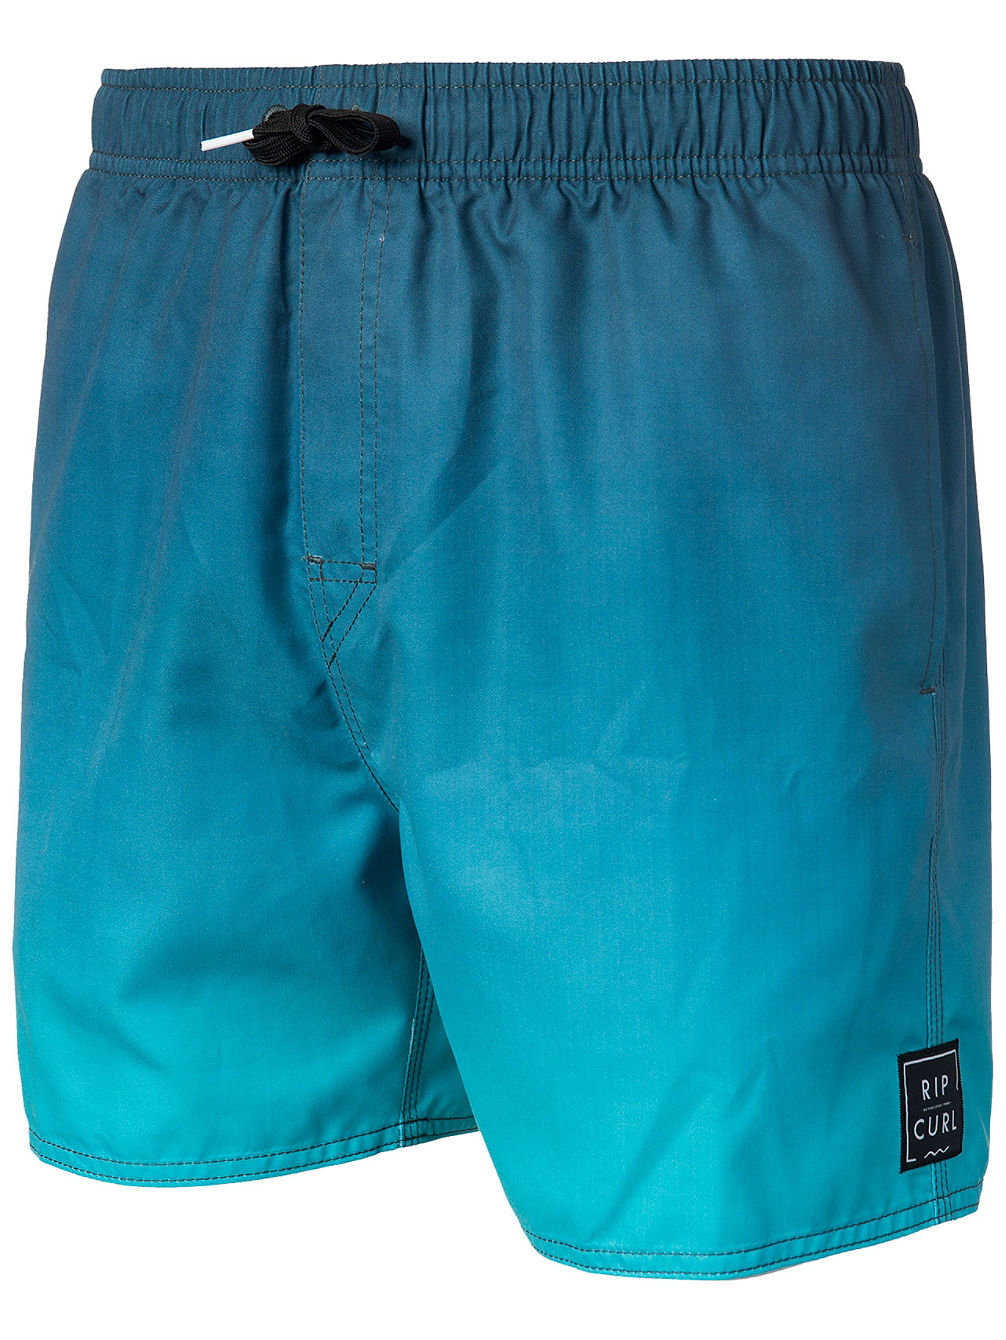 "Volley Tye N Dye 16"" Boardshorts"